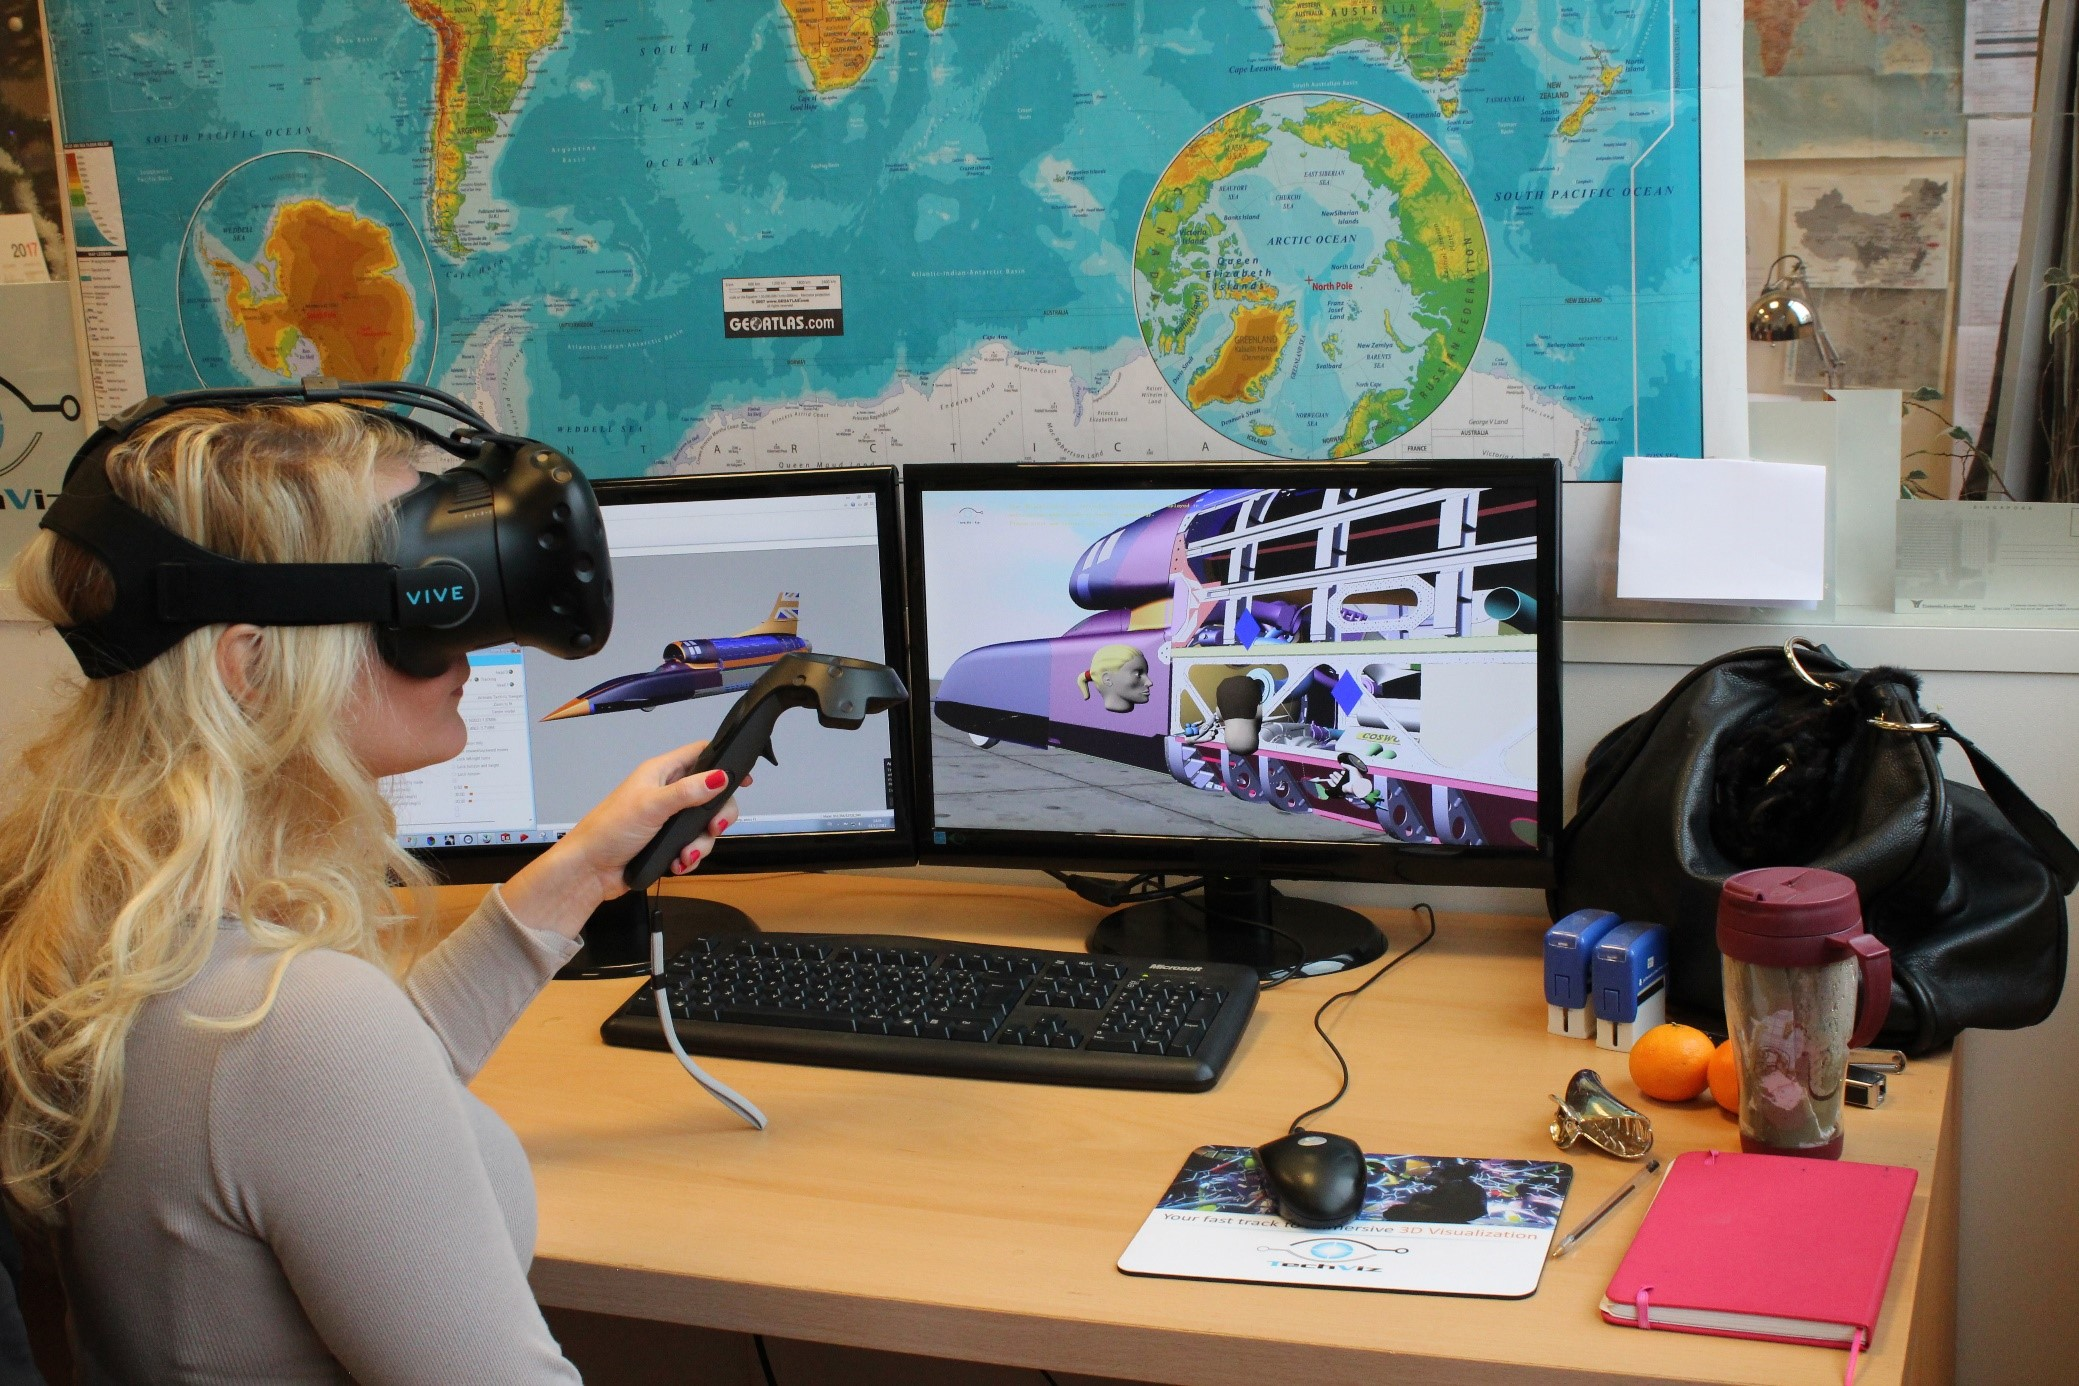 Collaborate in VR with Techviz software